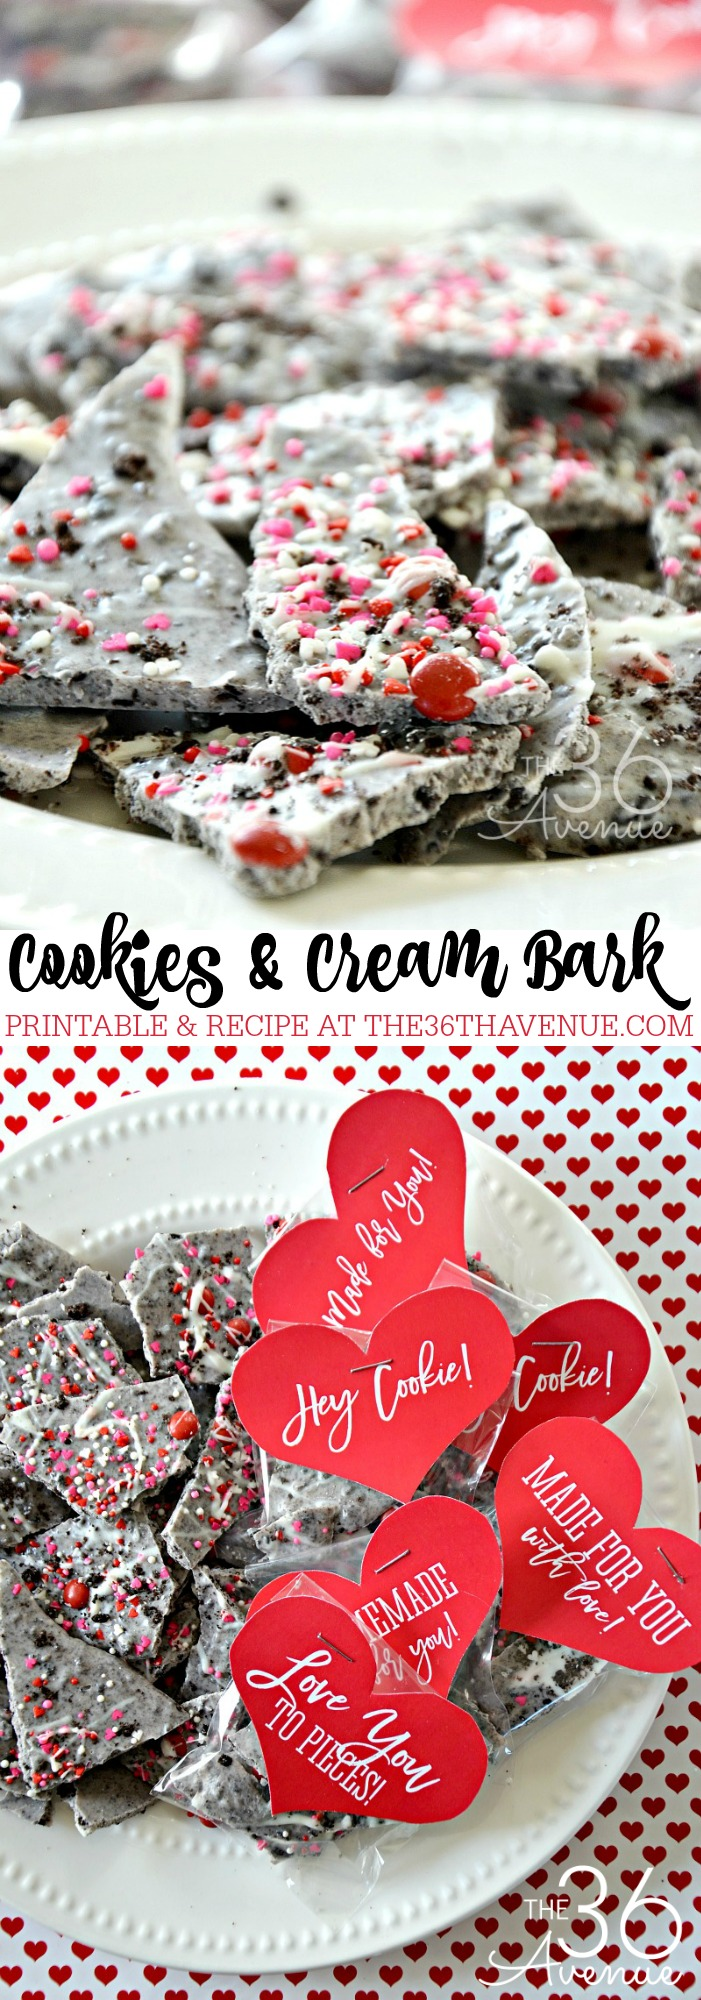 This Cookies & Cream Bark tastes just like the candy bar! You'll need just two ingredients for this easy and quick recipe! This treat is perfect for dessert or as a snack! So good!